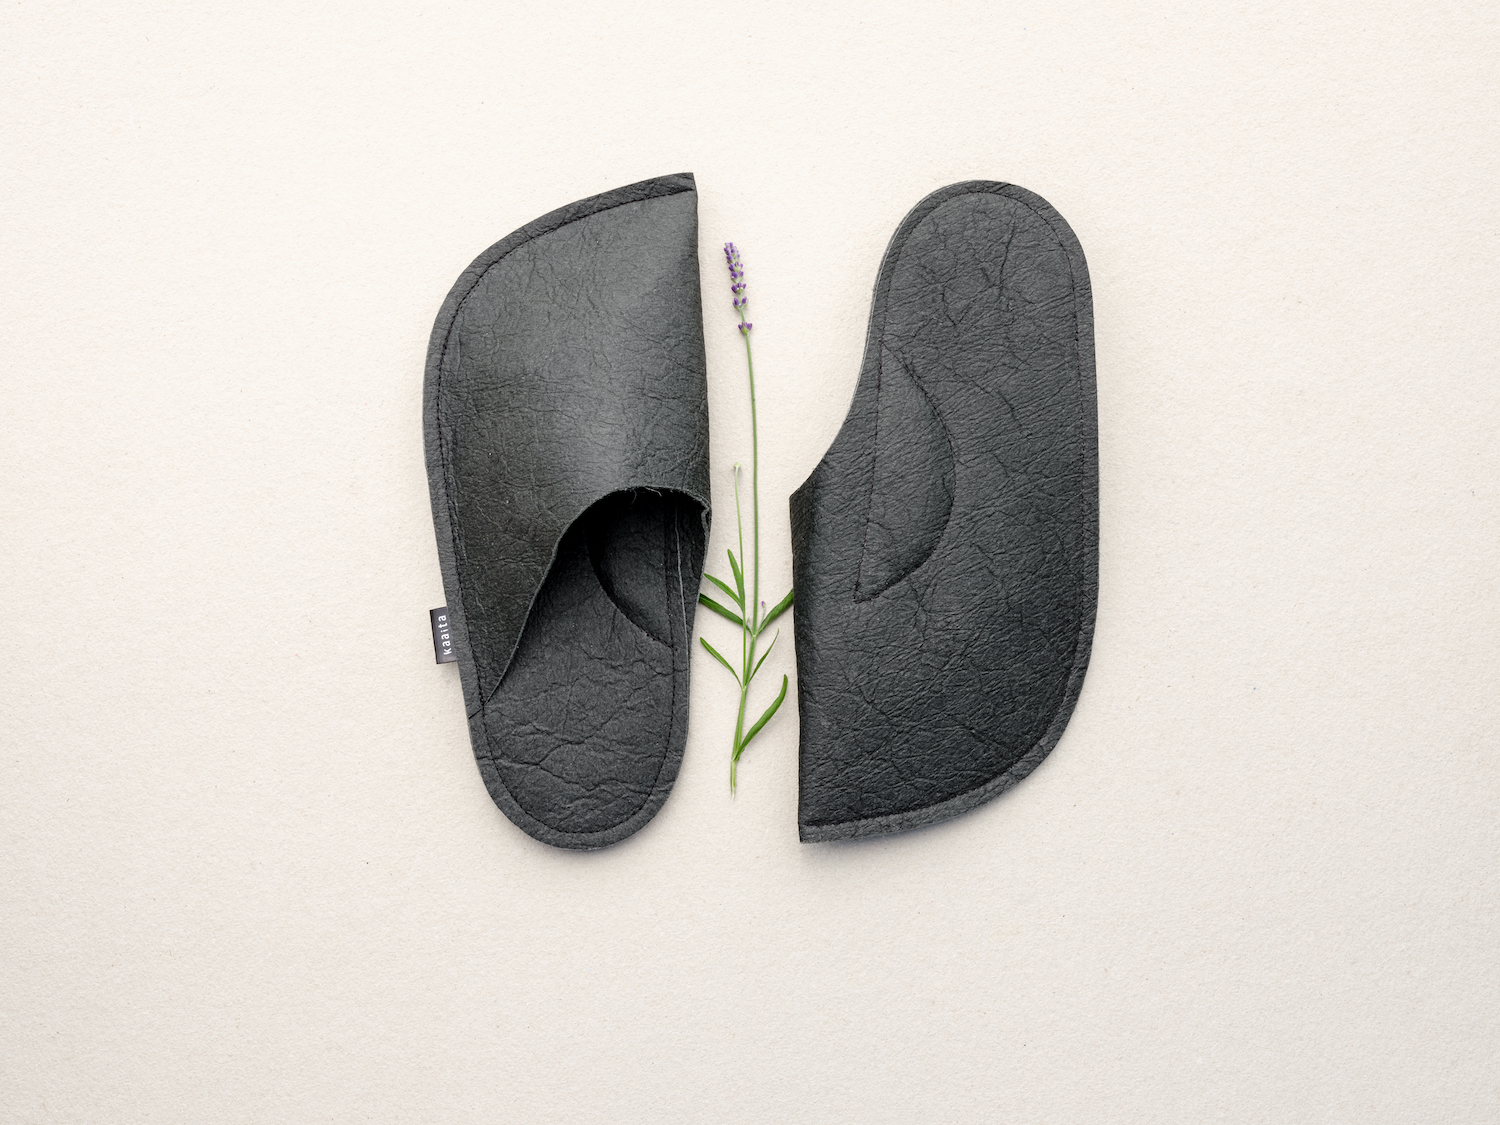 Non-slip soles. Lux lavender flowers sewn into the sweet spot of your feet.